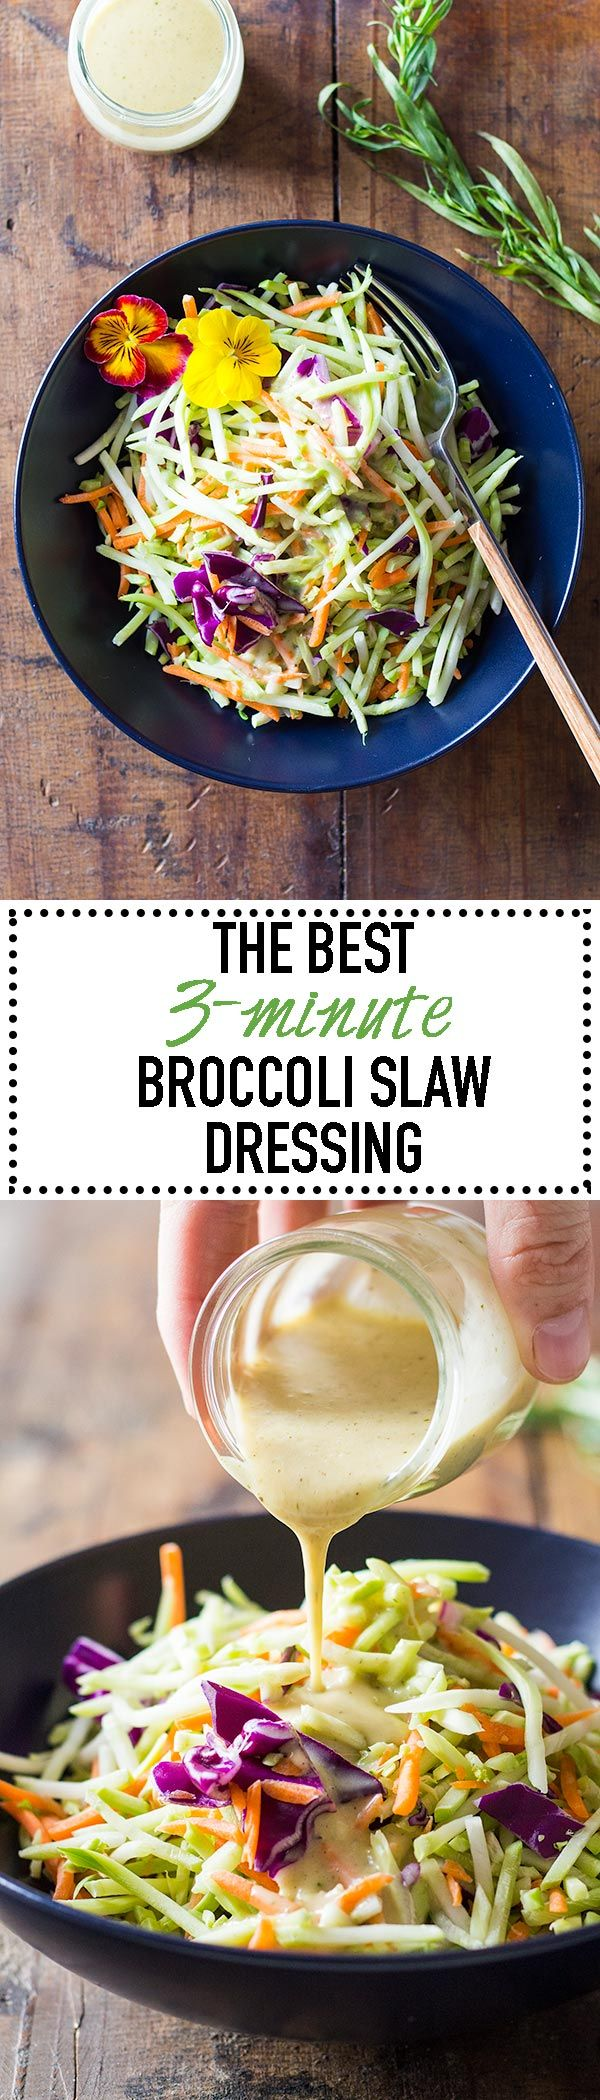 Yes! It's the best! The very best Broccoli Slaw Dressing EVER!!! Secret ingredients: estragon, honey and dijon mustard! Well, now they're not secret anymore ;) via @greenhealthycoo #ad